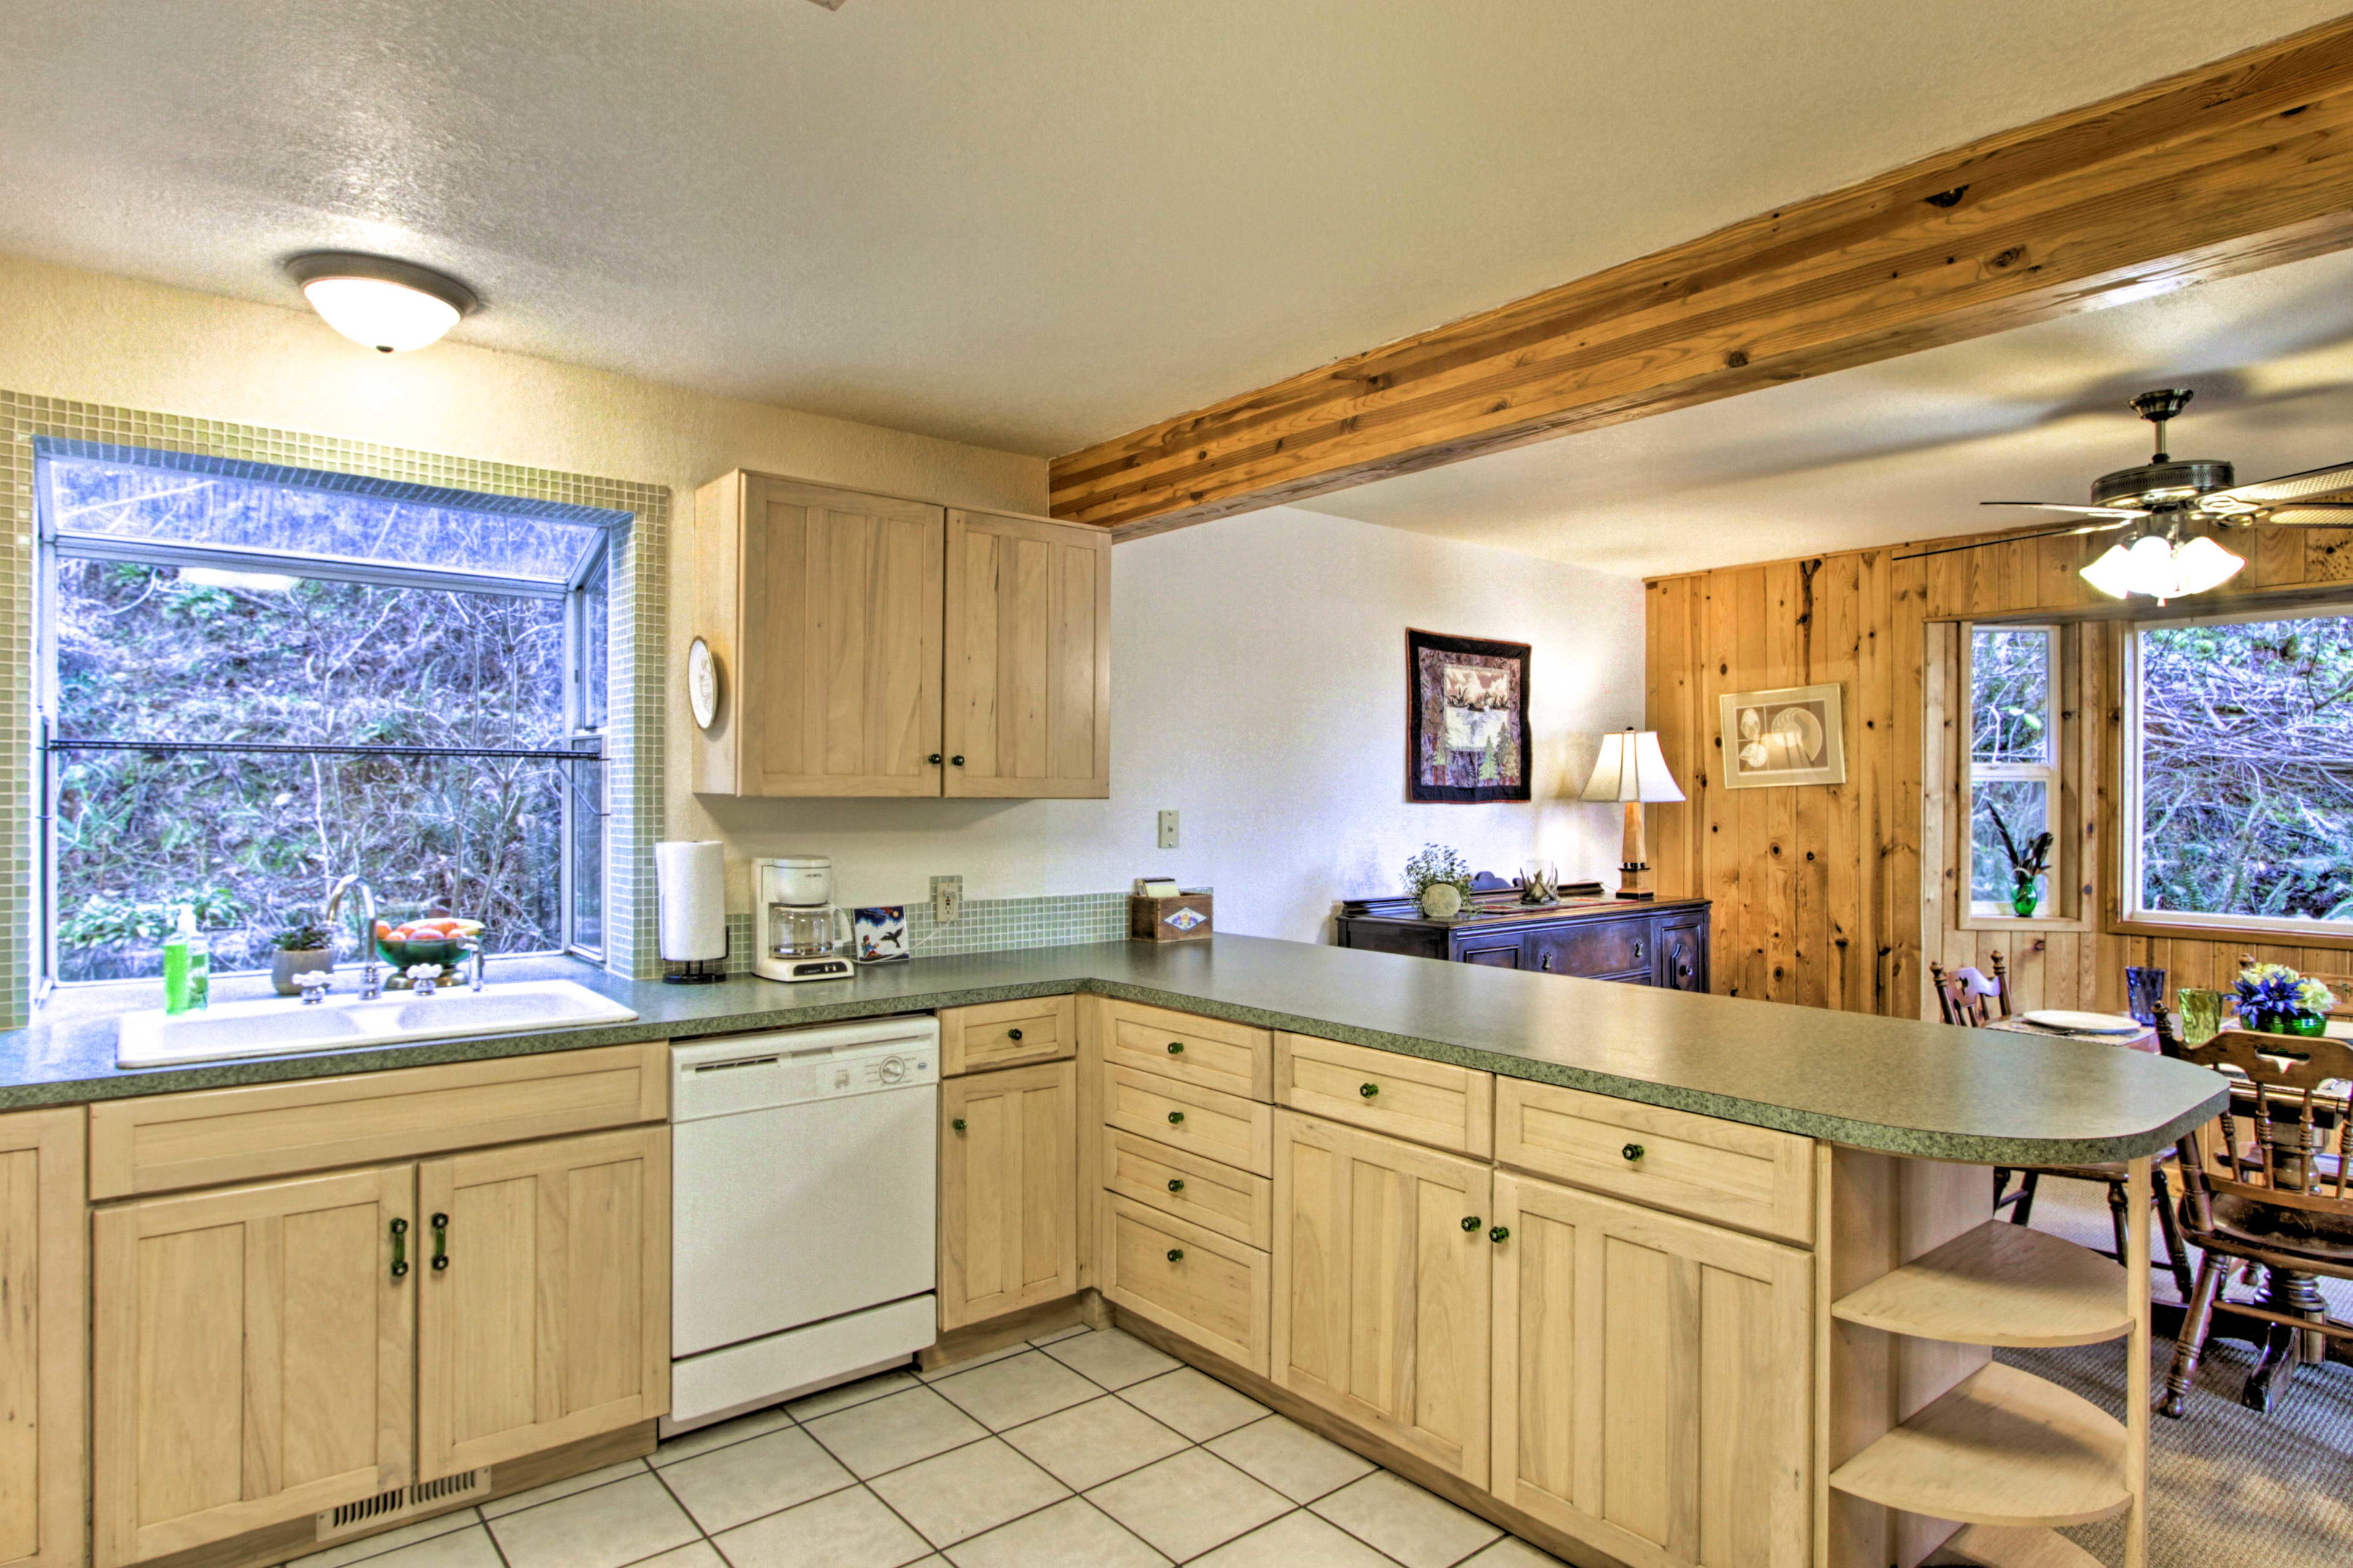 The kitchen features wraparound counters with plenty of cabinet storage.